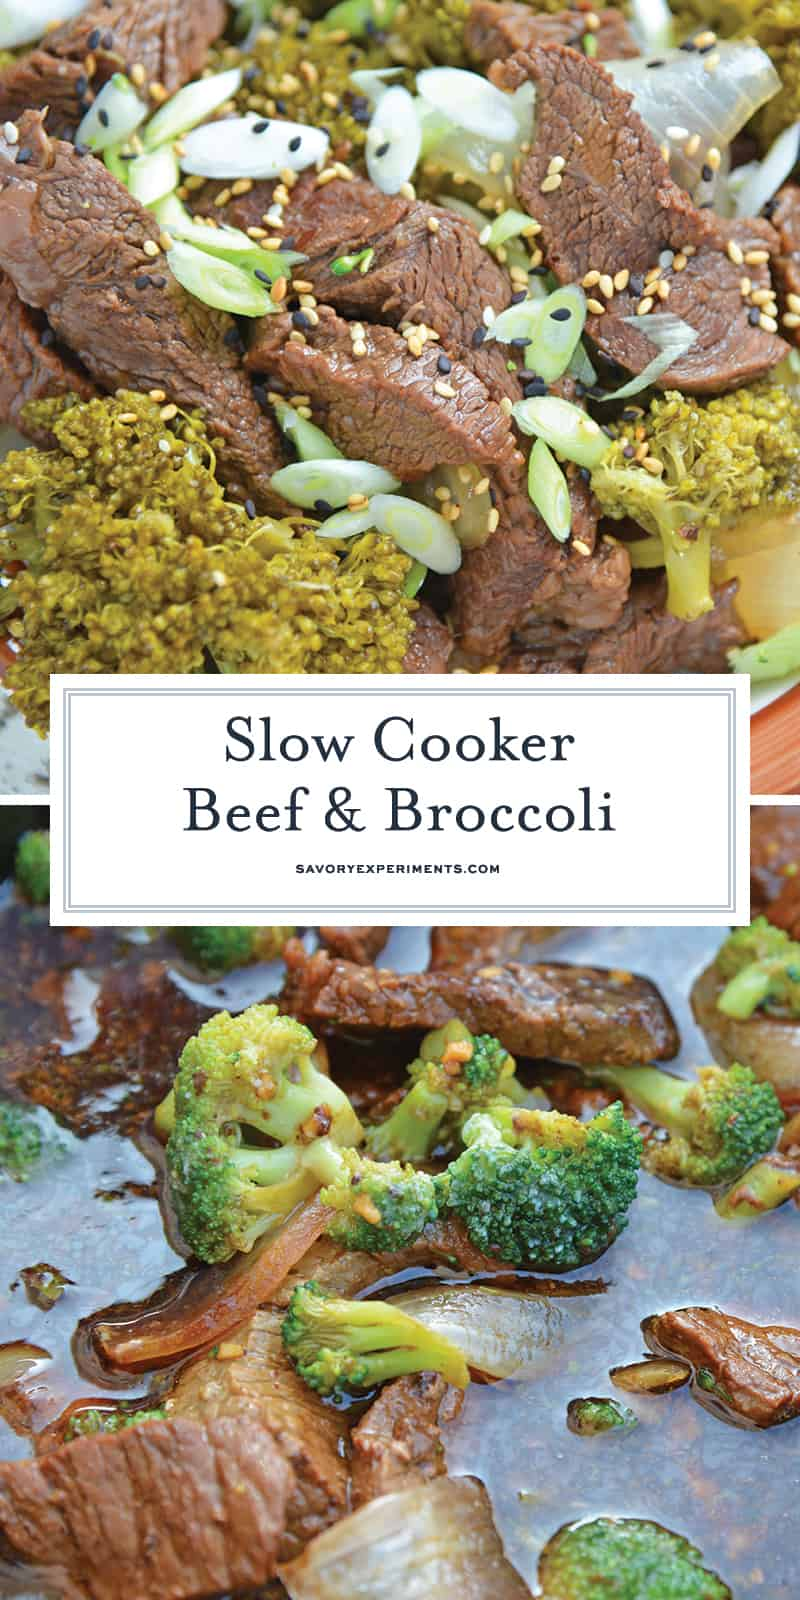 Do you like carry-out Chinese Beef and Broccoli? Then you'll love my Slow Cooker Beef and Broccoli! This Crock pot Beef and Broccoli is better than take-out! #slowcookerbeefandbroccoli #crockpotbeefandbroccoli #chinesebeefandbroccoli www.savoryexperiments.com